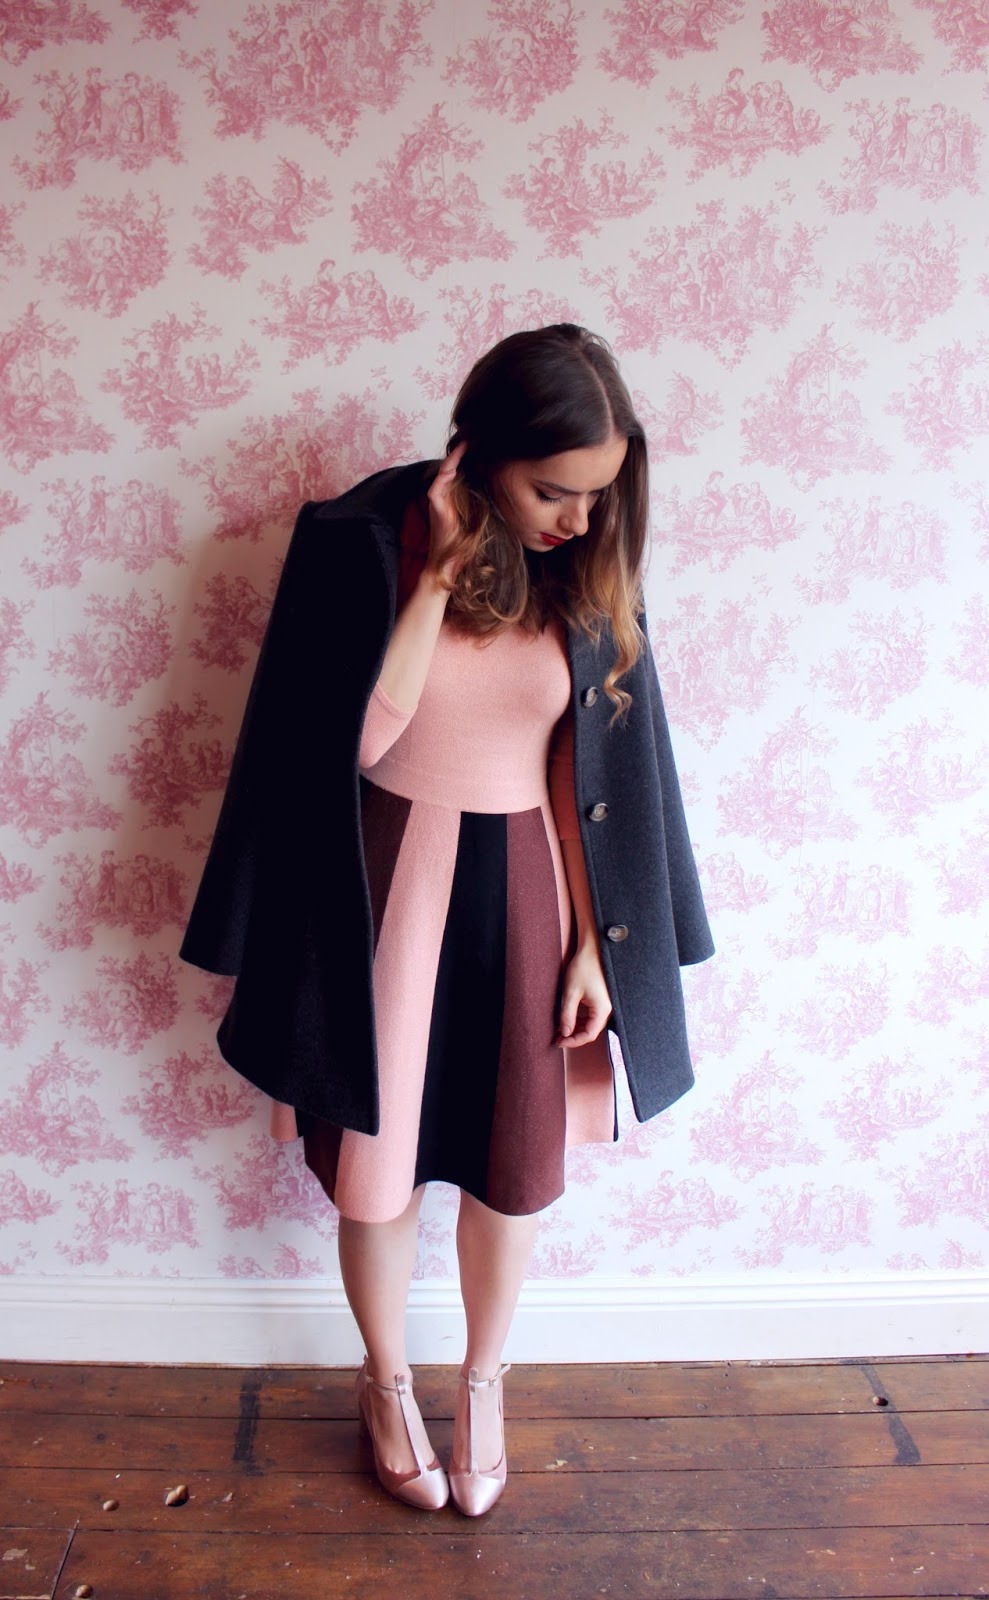 Boden Pink Dress and Coat